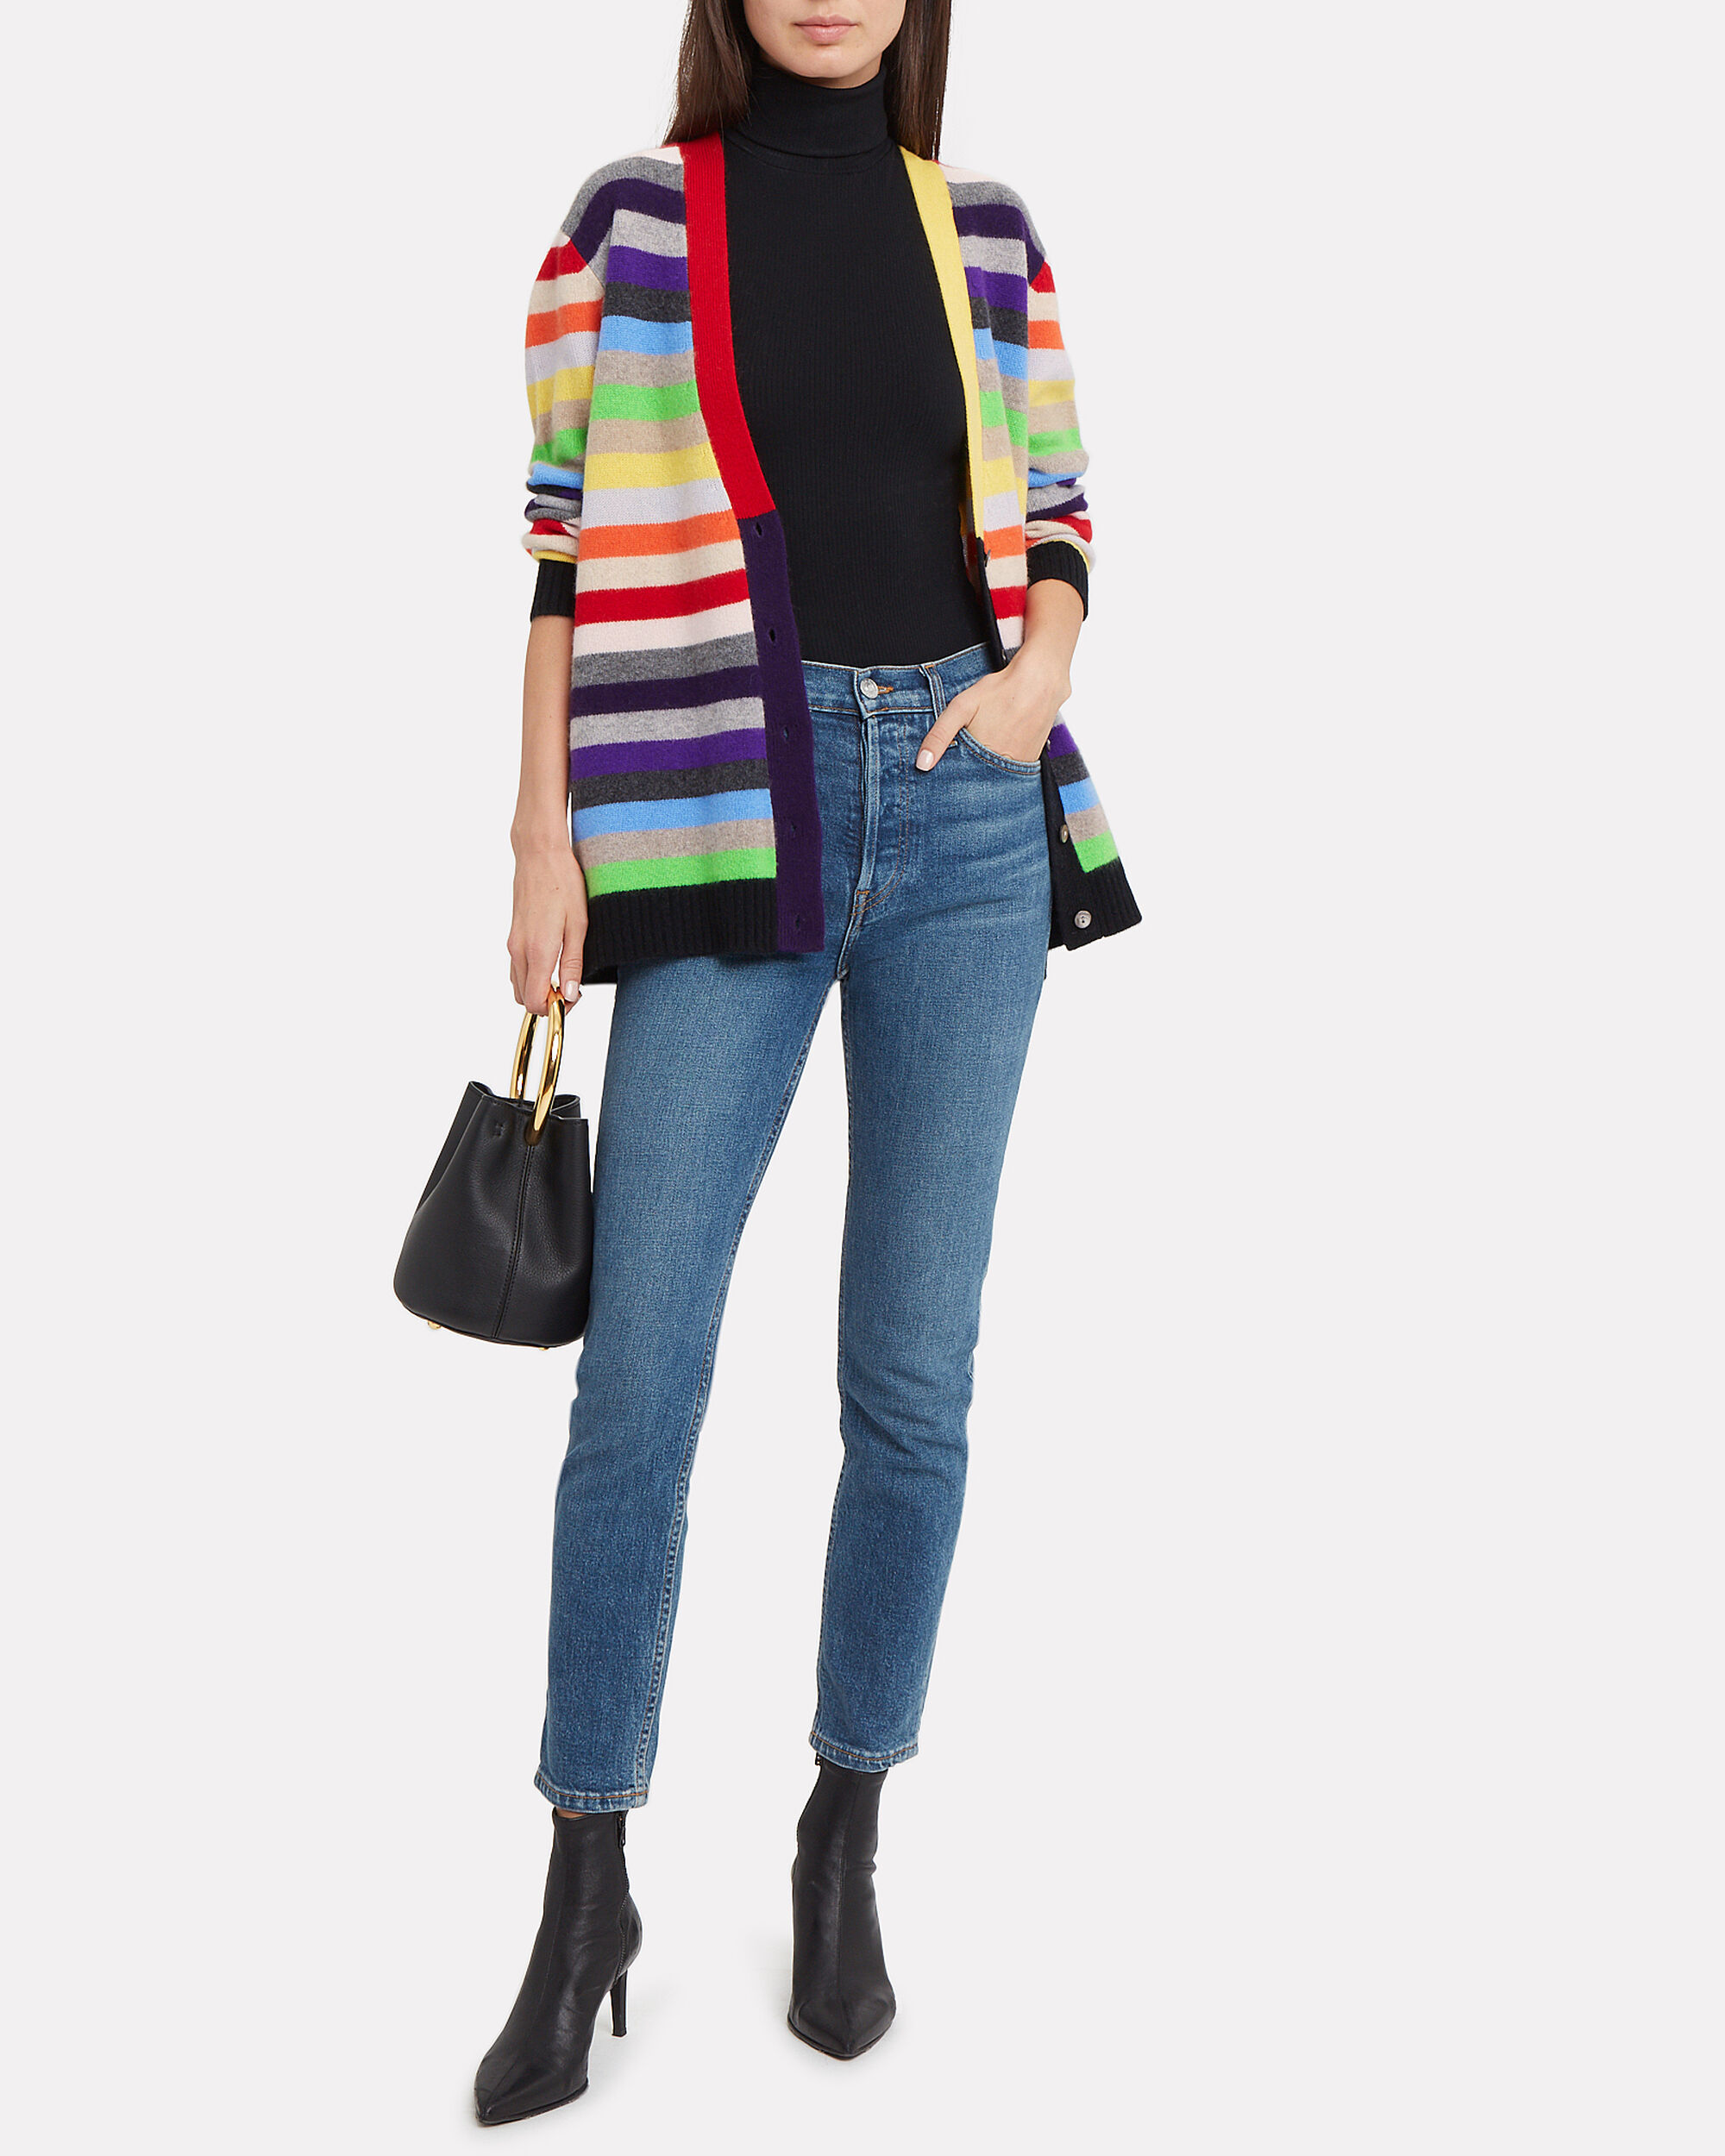 Rimini Striped Cardigan, RAINBOW STRIPES, hi-res